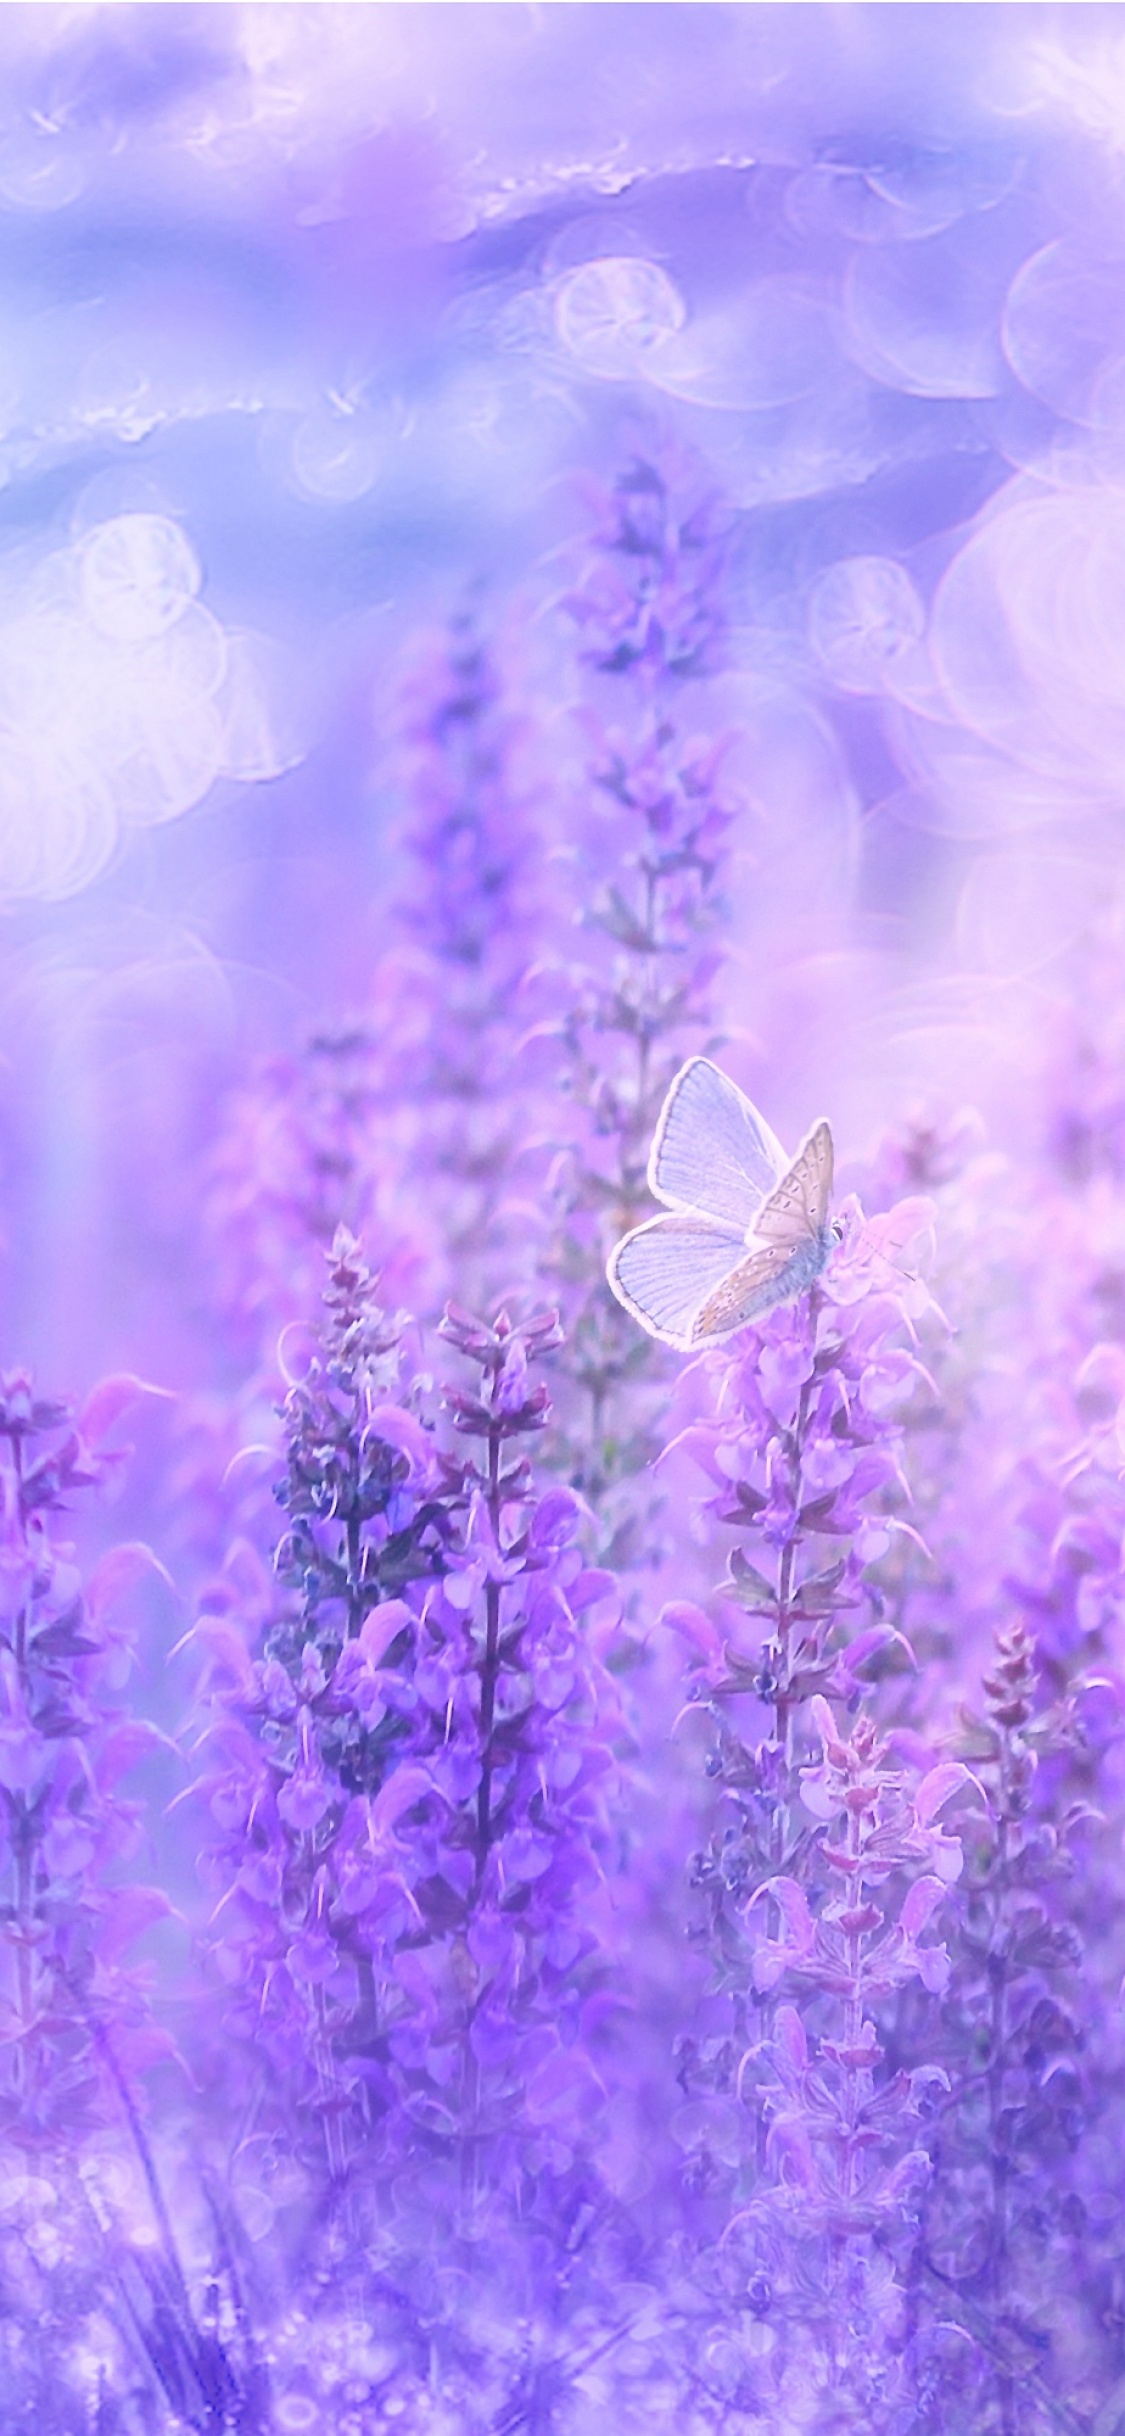 Find and download the best iphone wallpapers. Sage Plant Wallpaper 4K, Violet flowers, Butterfly, Garden